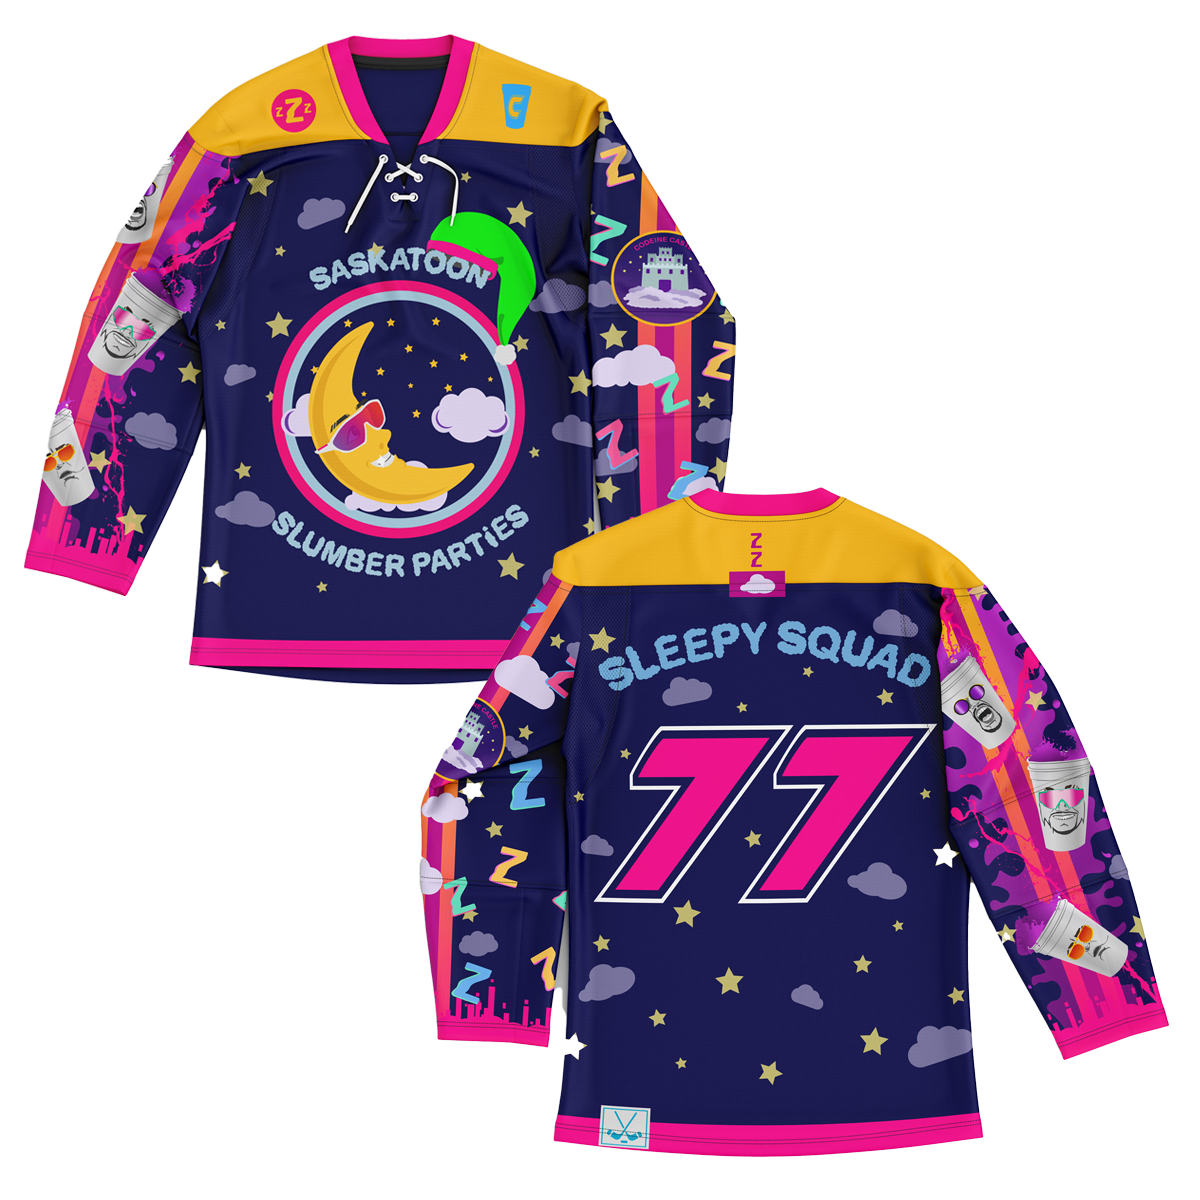 SASKATOON SLUMBER PARTiES HOCKEY JERSEY (Custom Option Only)